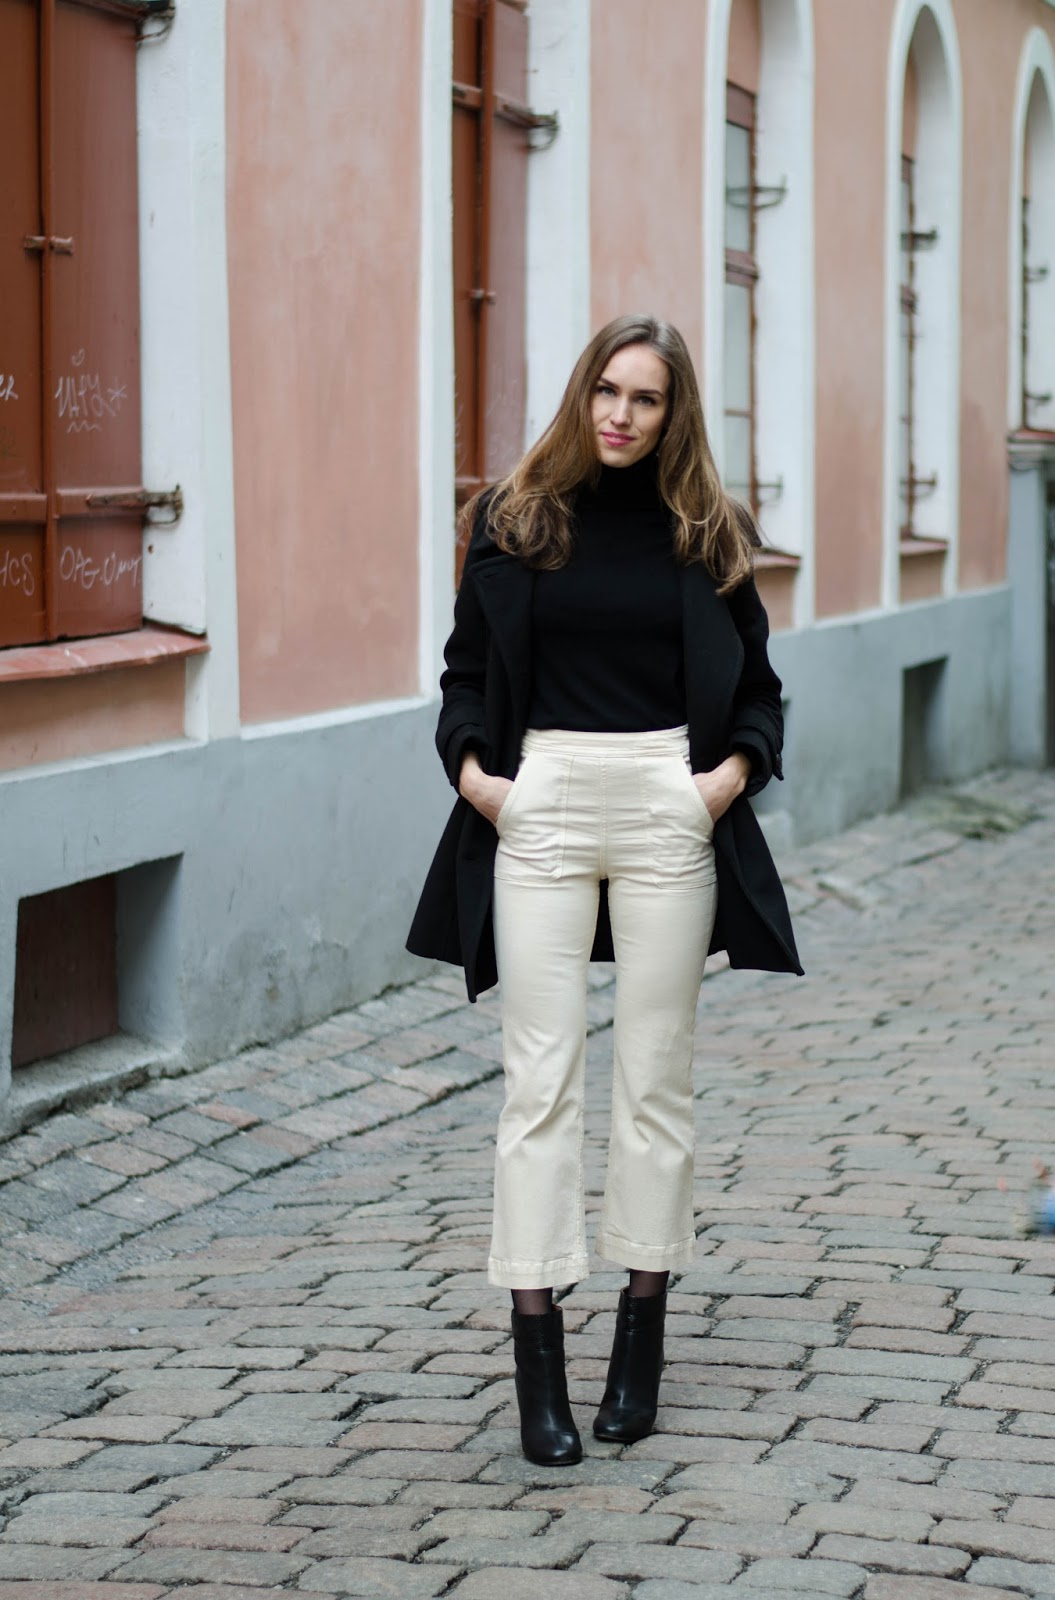 kristjaana mere white kick flare ankle jeans black turtleneck